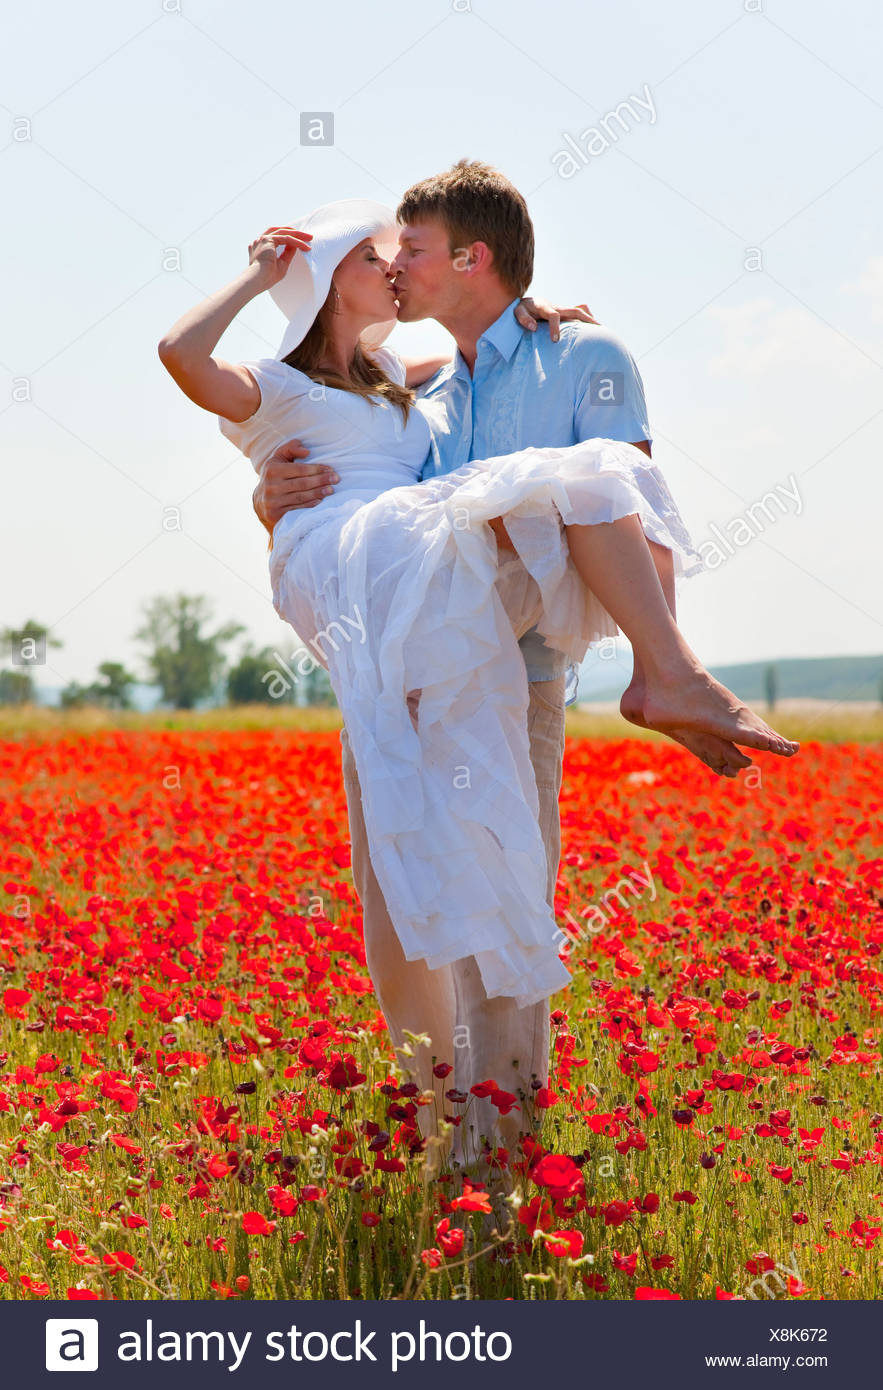 Couple kissing in field of poppies - Stock Image